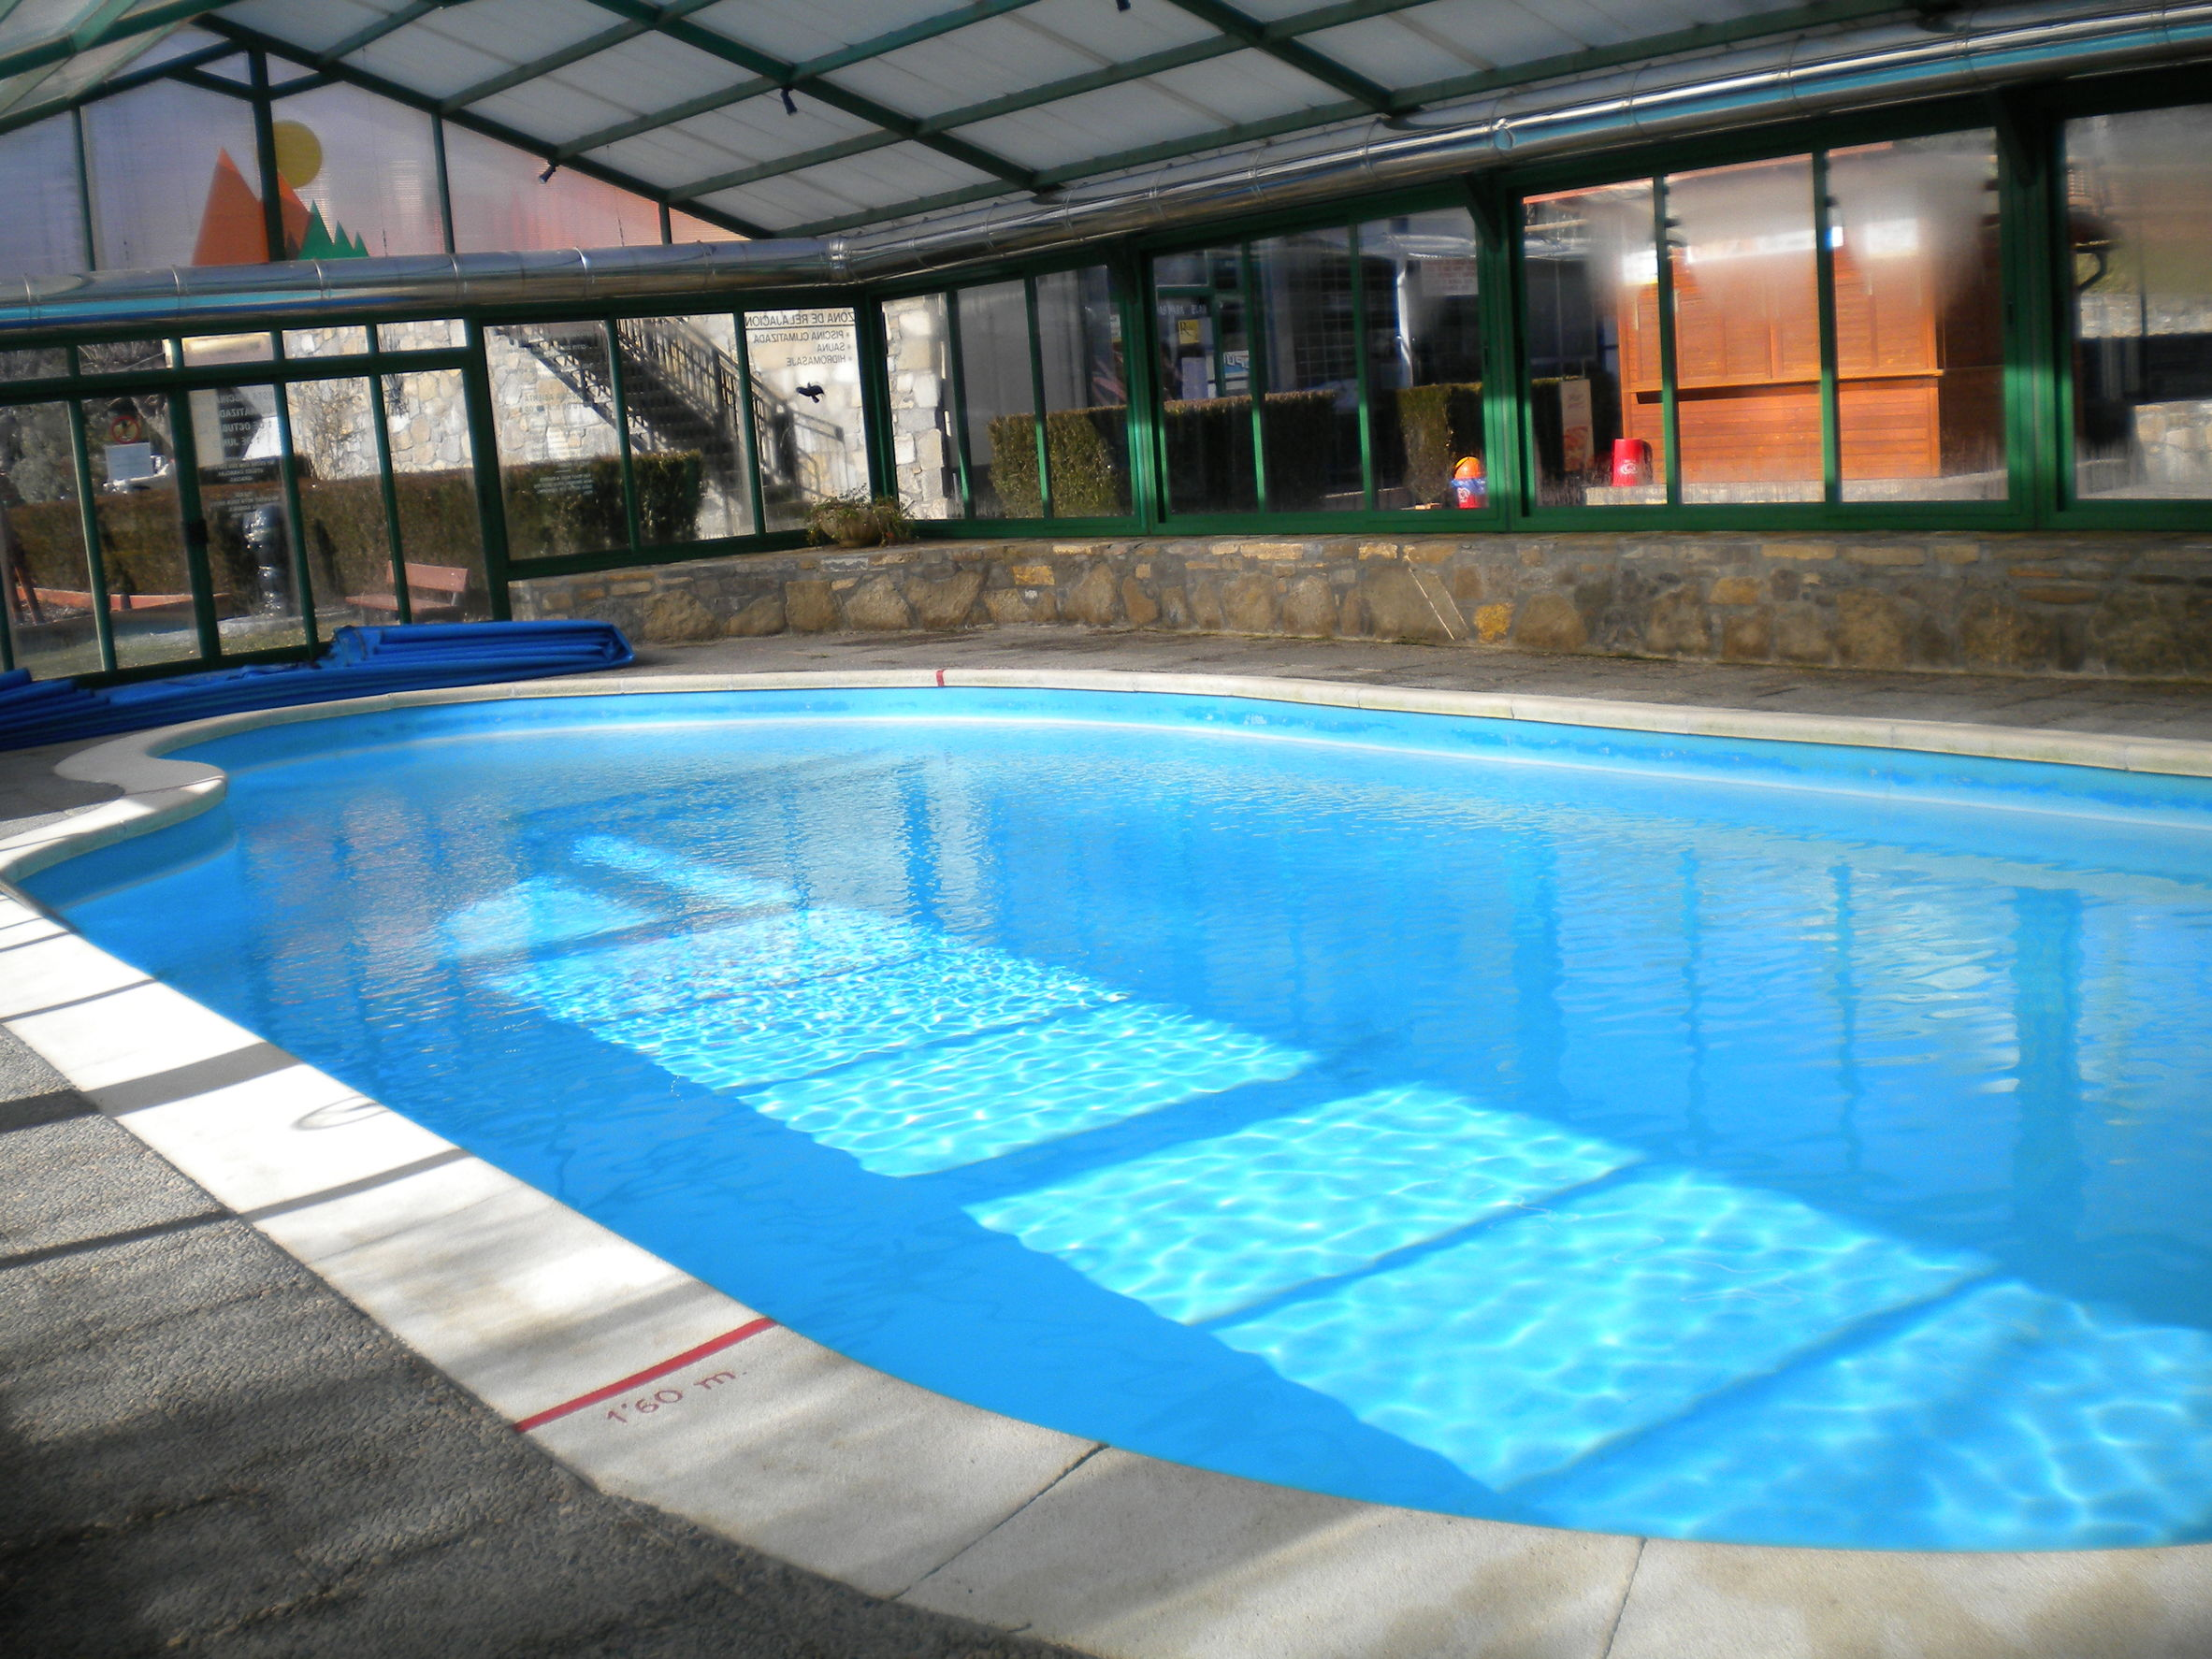 92899688 - climatized pool in the aran valley, lleida, catalonia, spain